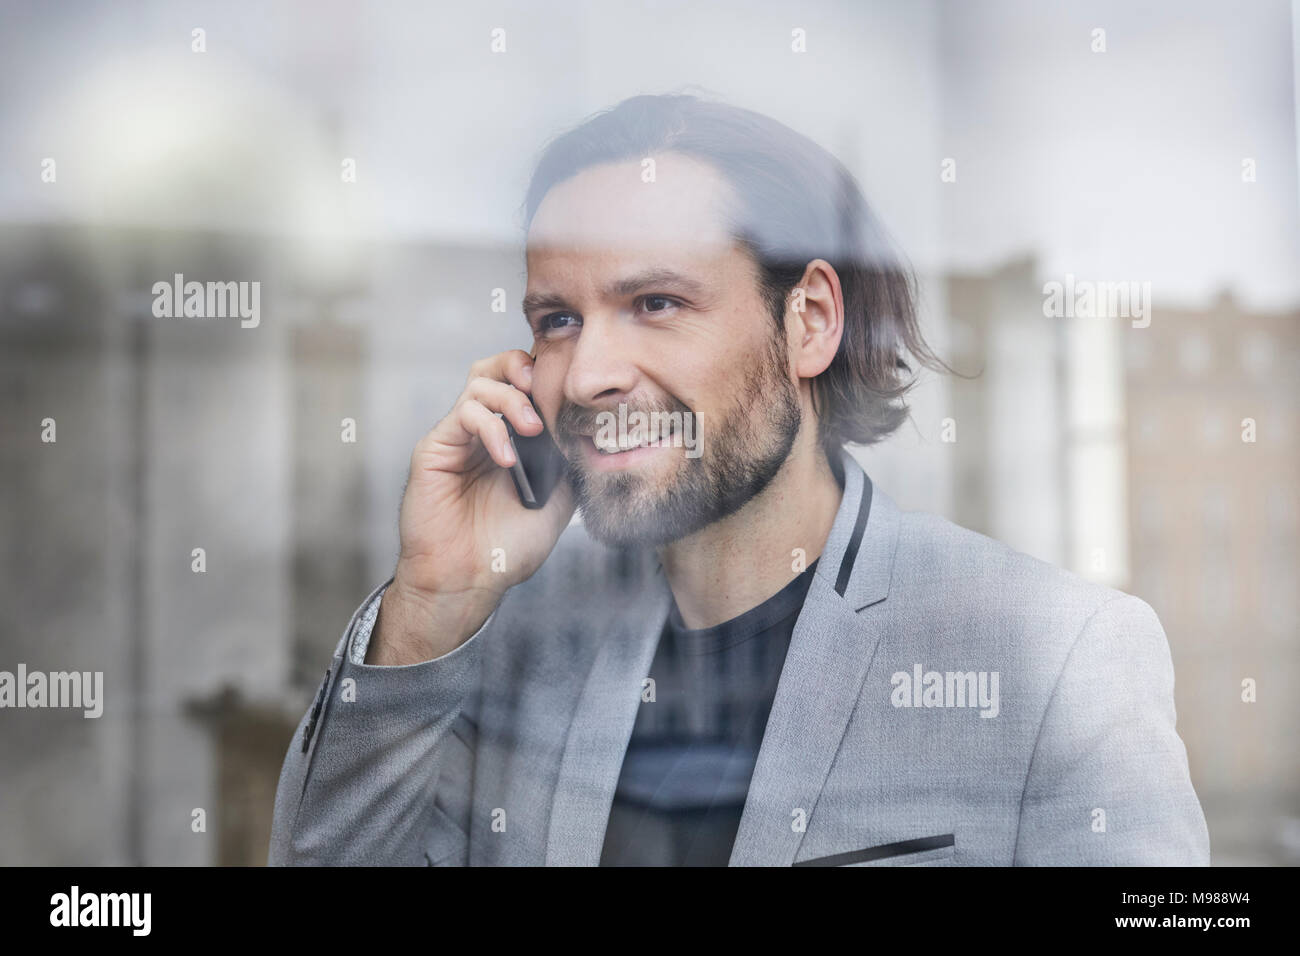 Portrait of smiling businessman on the phone behind windowpane - Stock Image